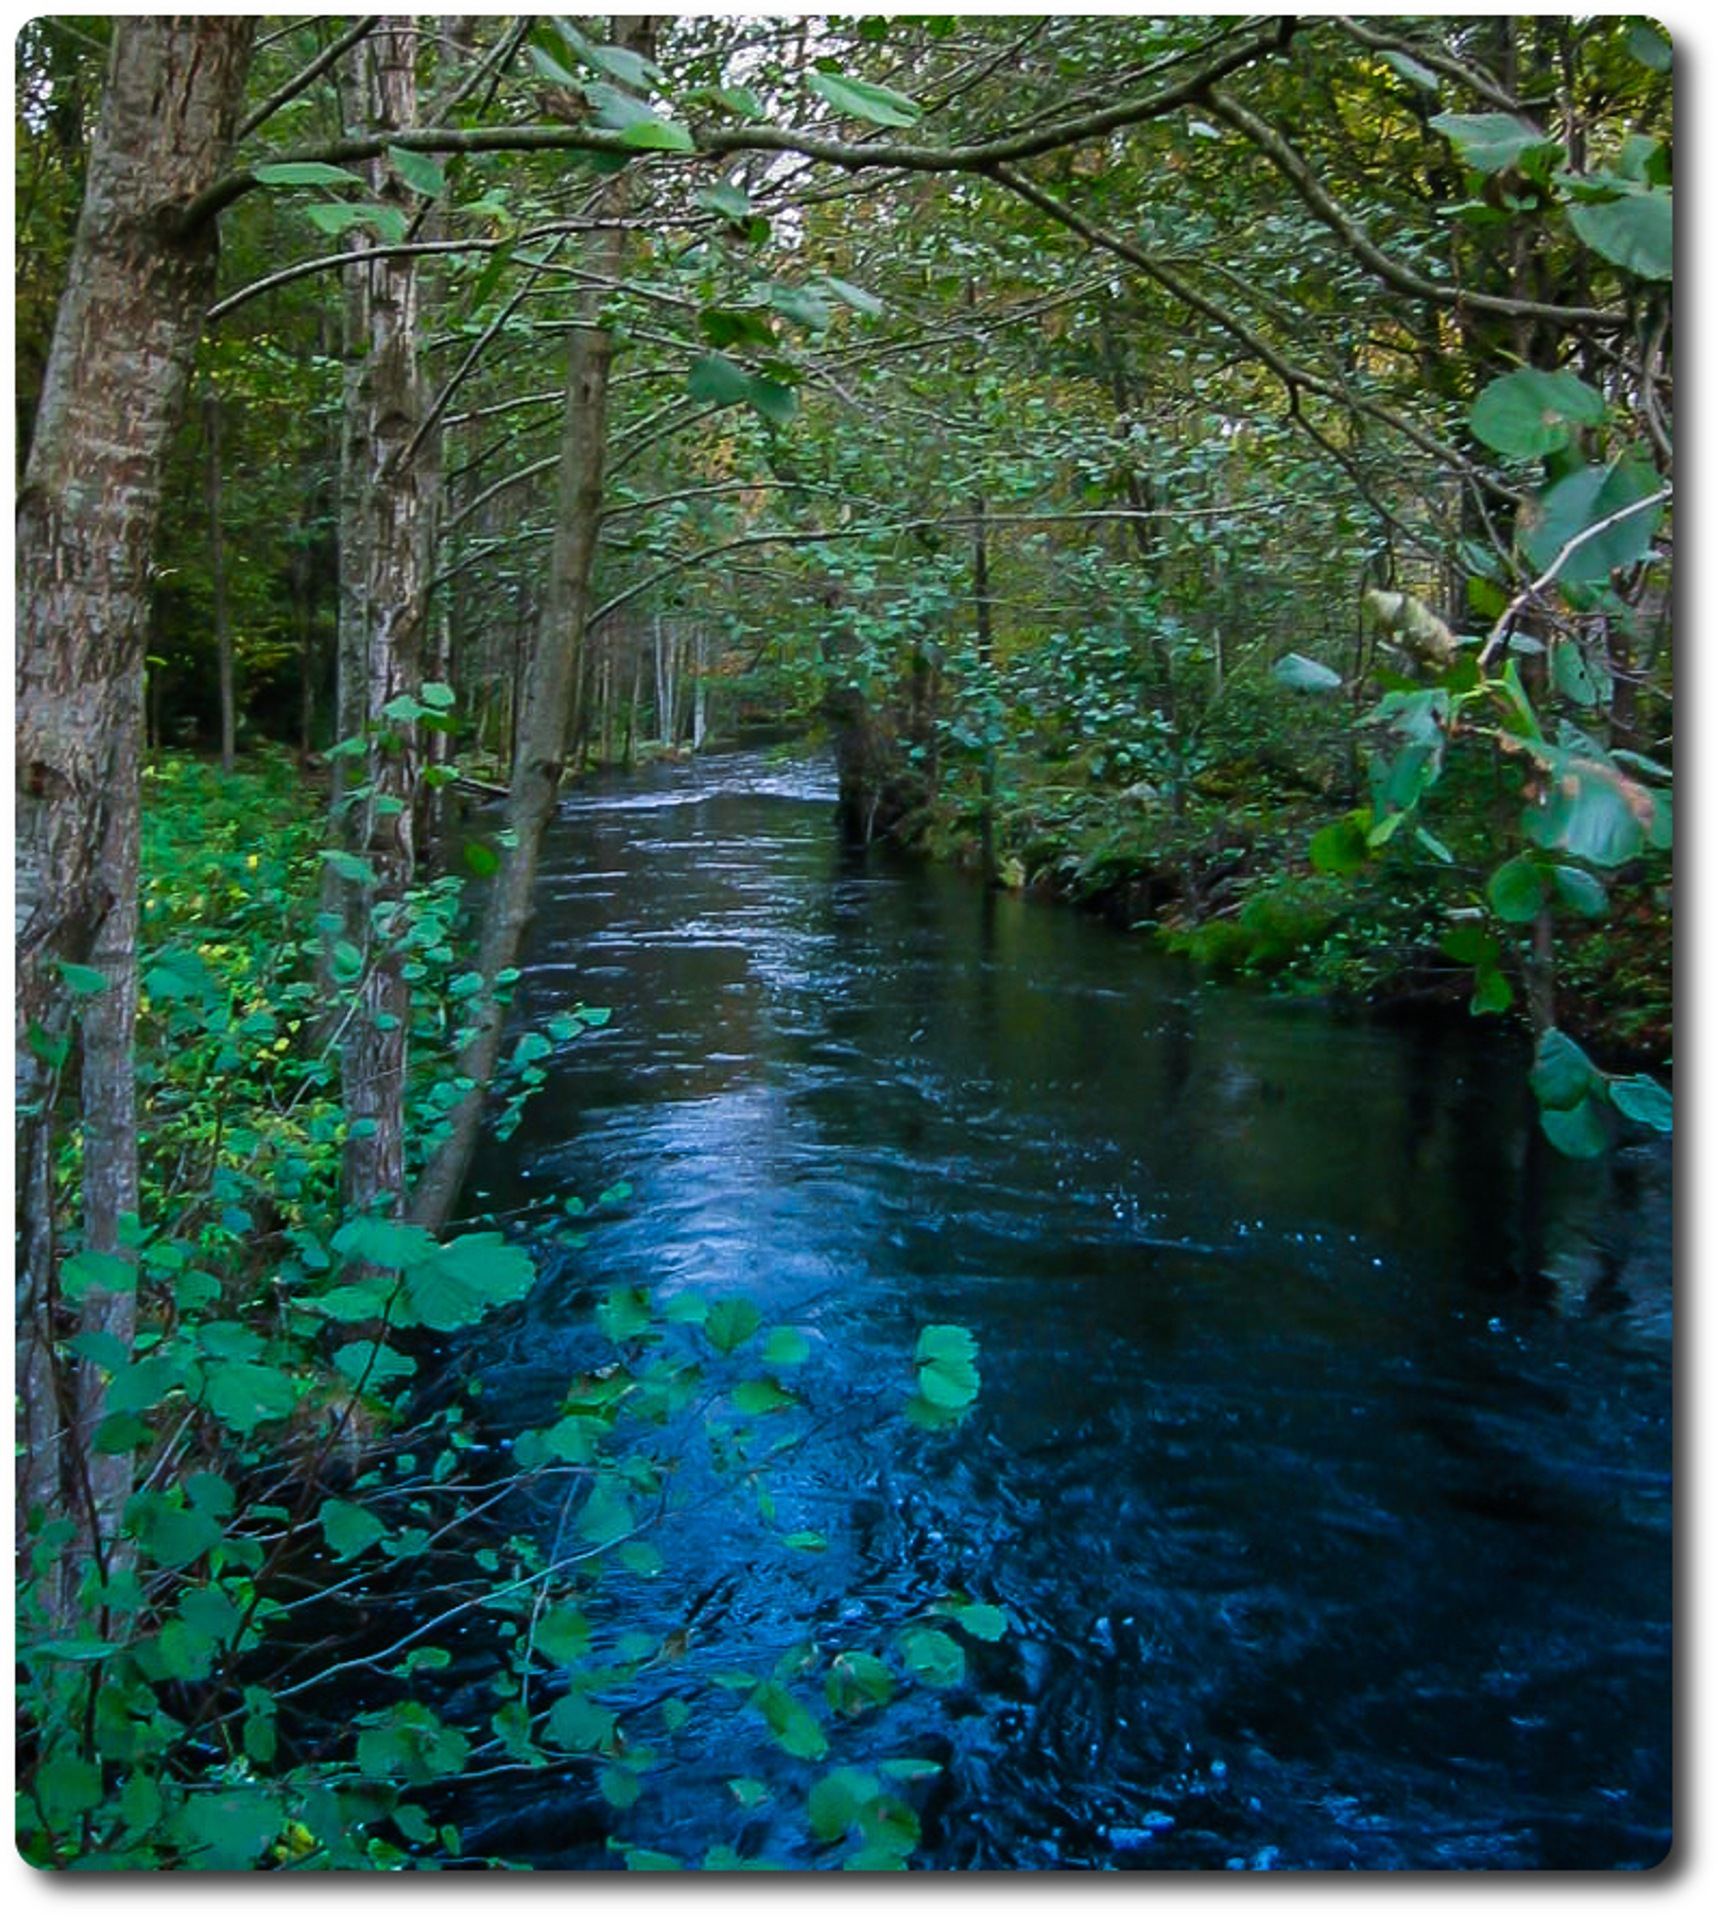 Stream in the forest by Lars Hultman